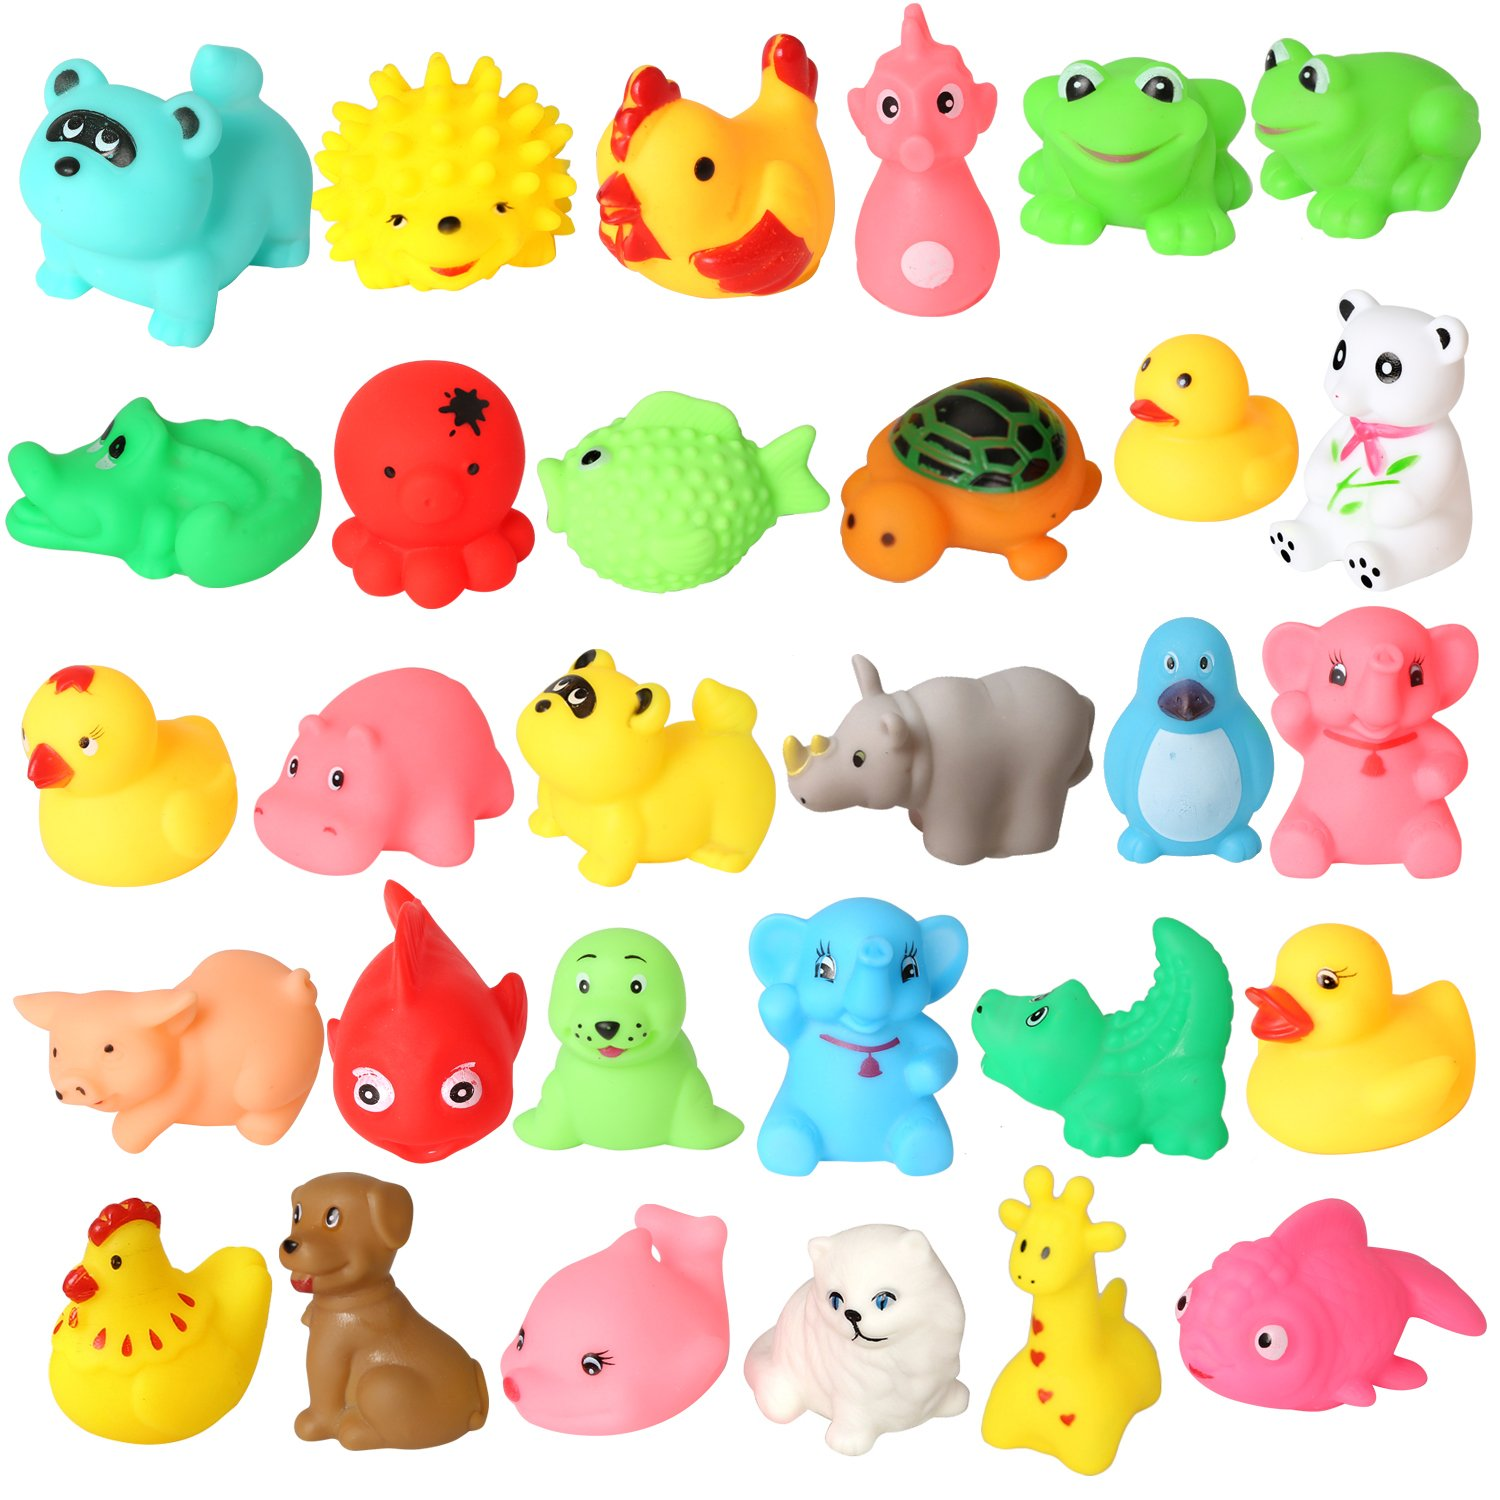 rainbow yuango Pack of 30 Mini Colorful Animals Rubber Bath Toys Cute Rubber Assorted Wildlife Animal Characters for Baby Chenghai